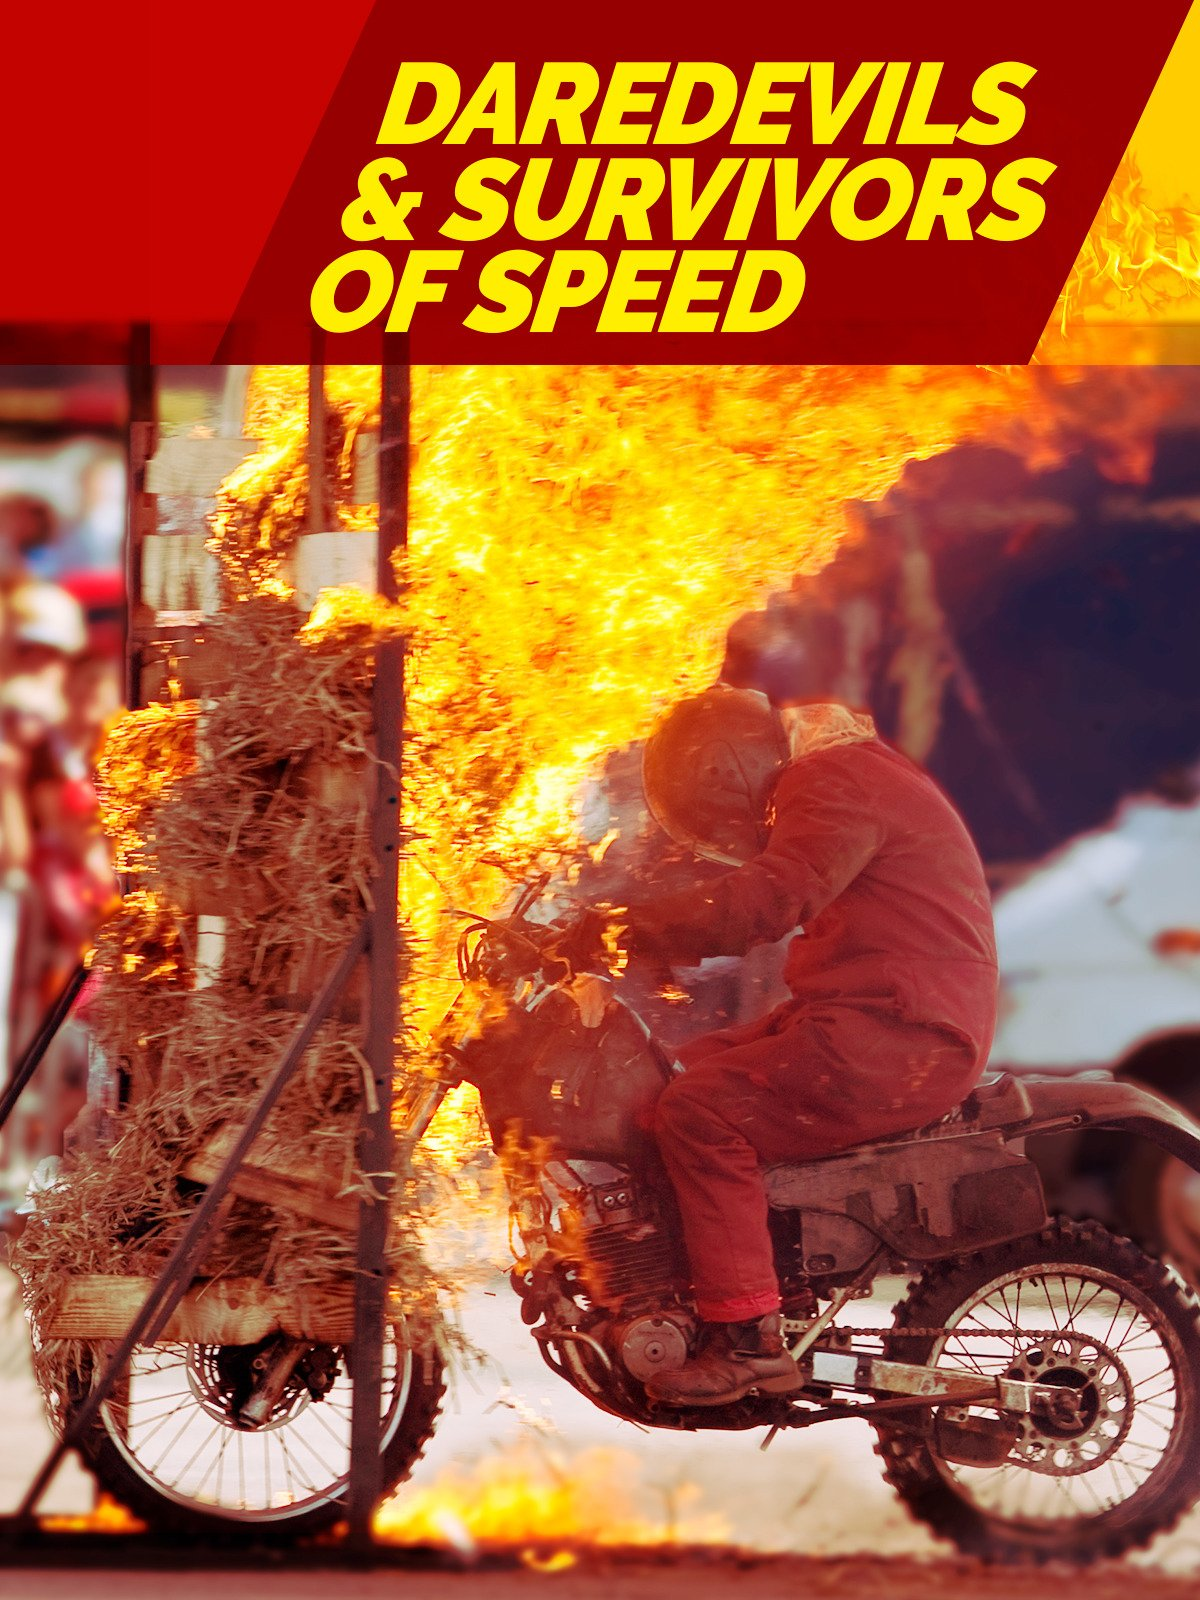 Daredevils & The Survivors of Speed